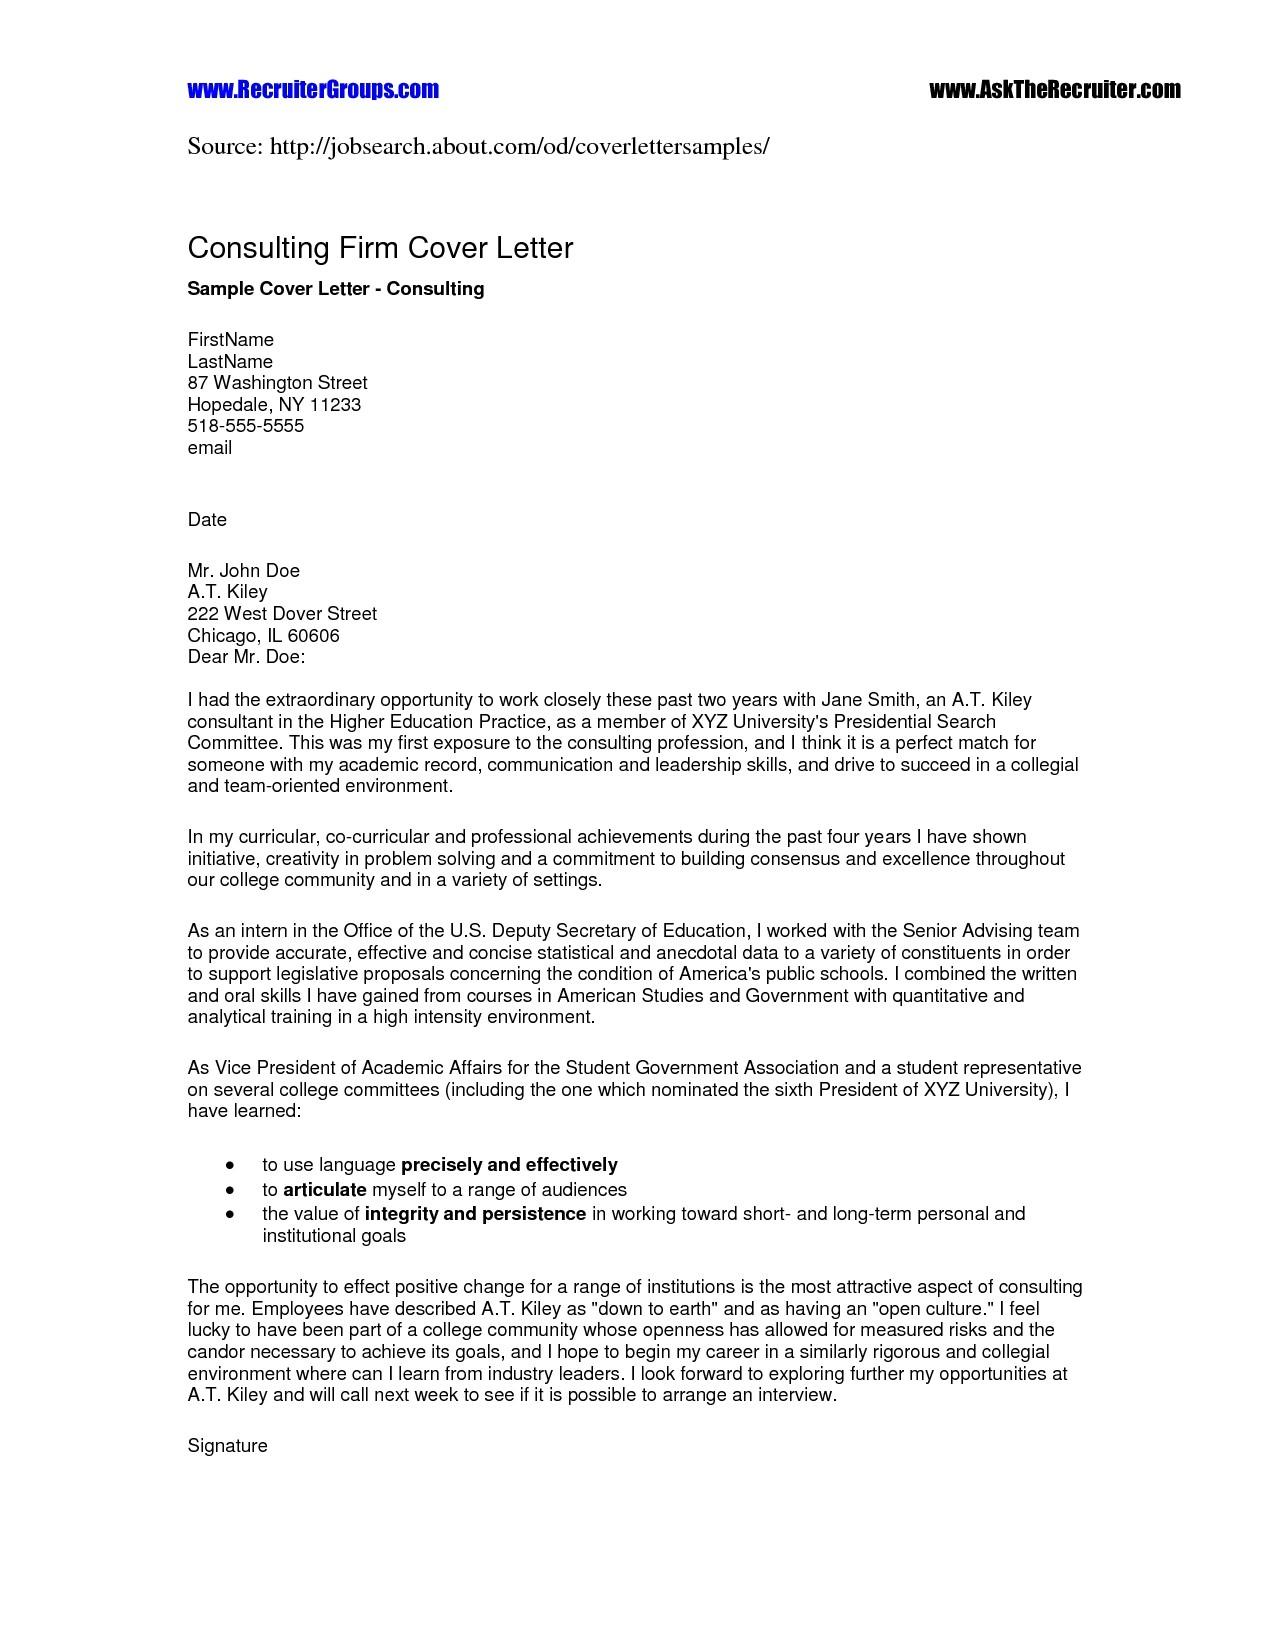 Free Cease and Desist Letter Template Canada - Promissory Note Template Canada